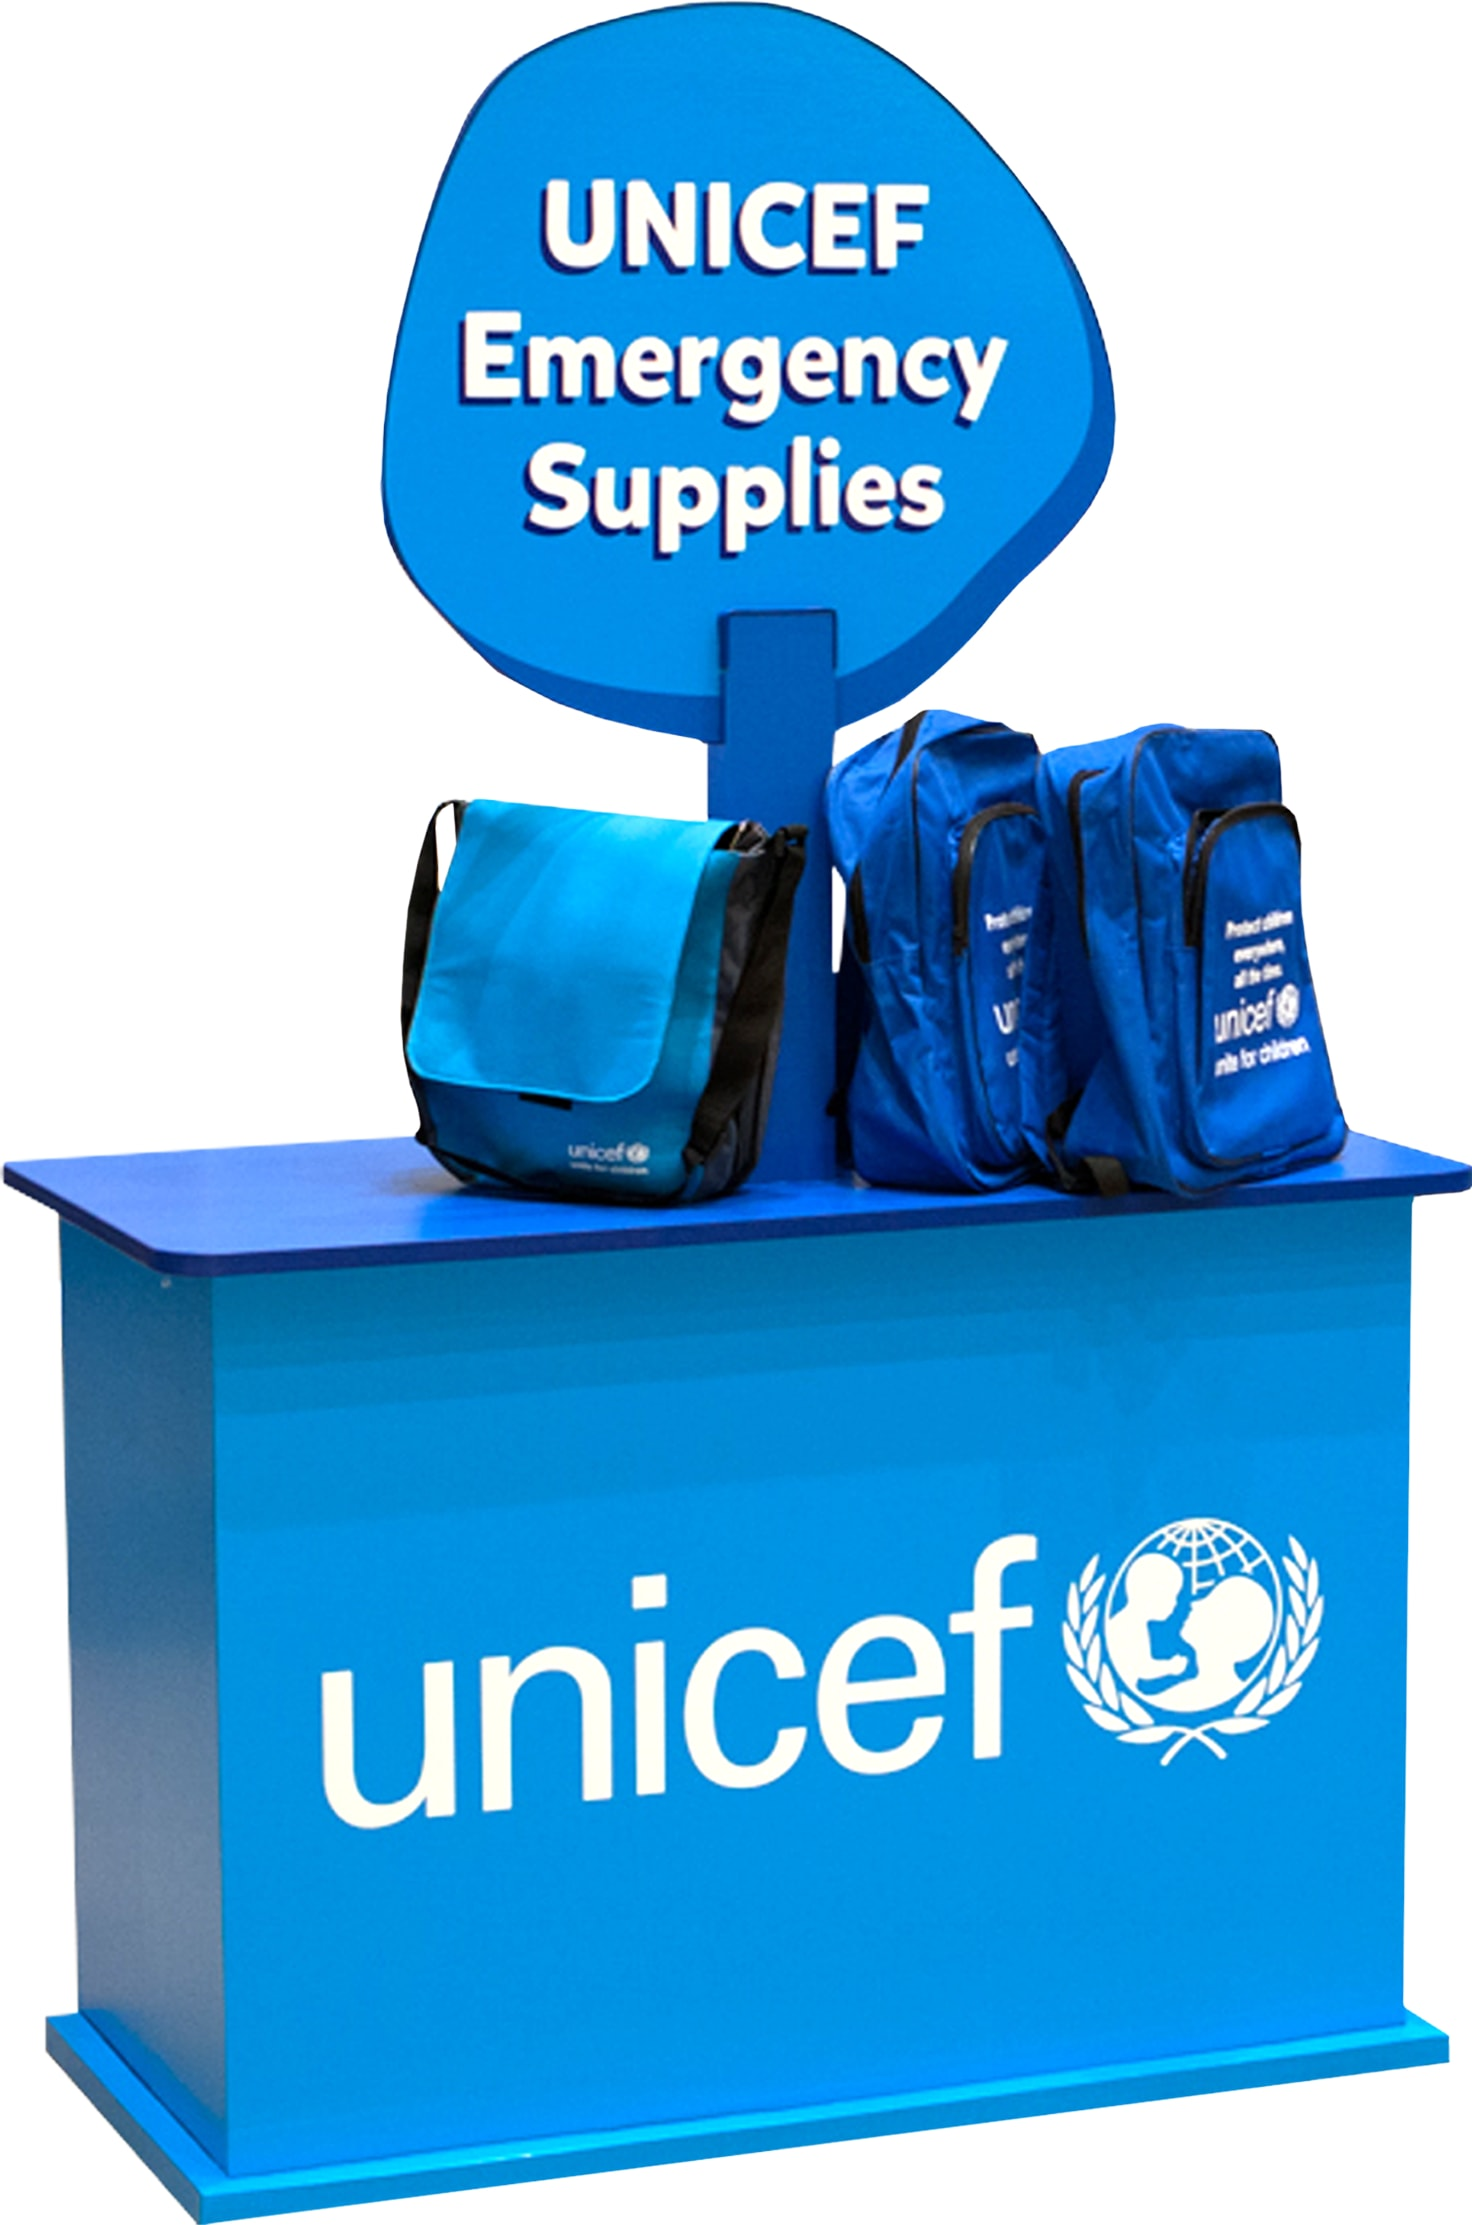 AUnicef pop display